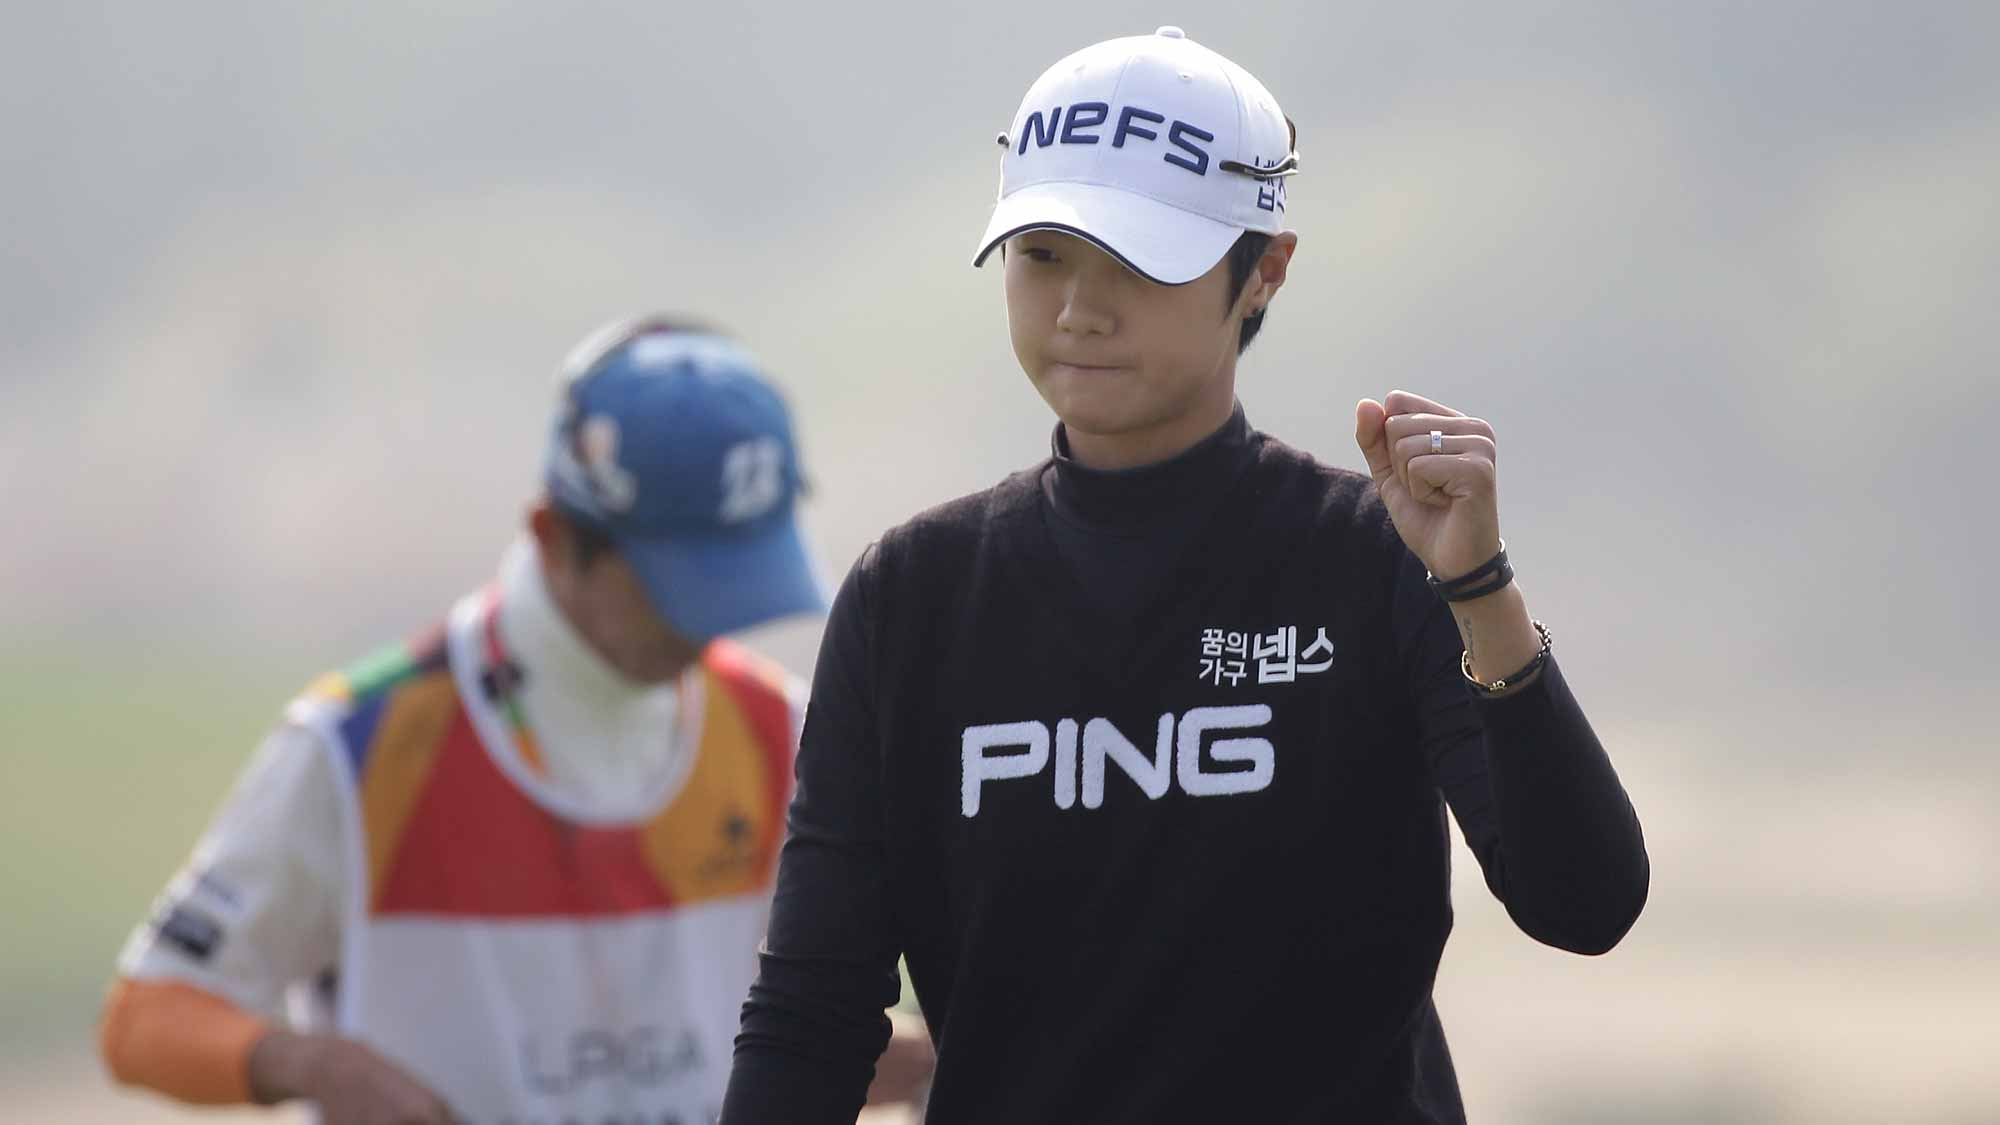 Sung Hyun Park of South Korea reacts after a putt on the 1st hole during round four of the LPGA KEB Hana Bank